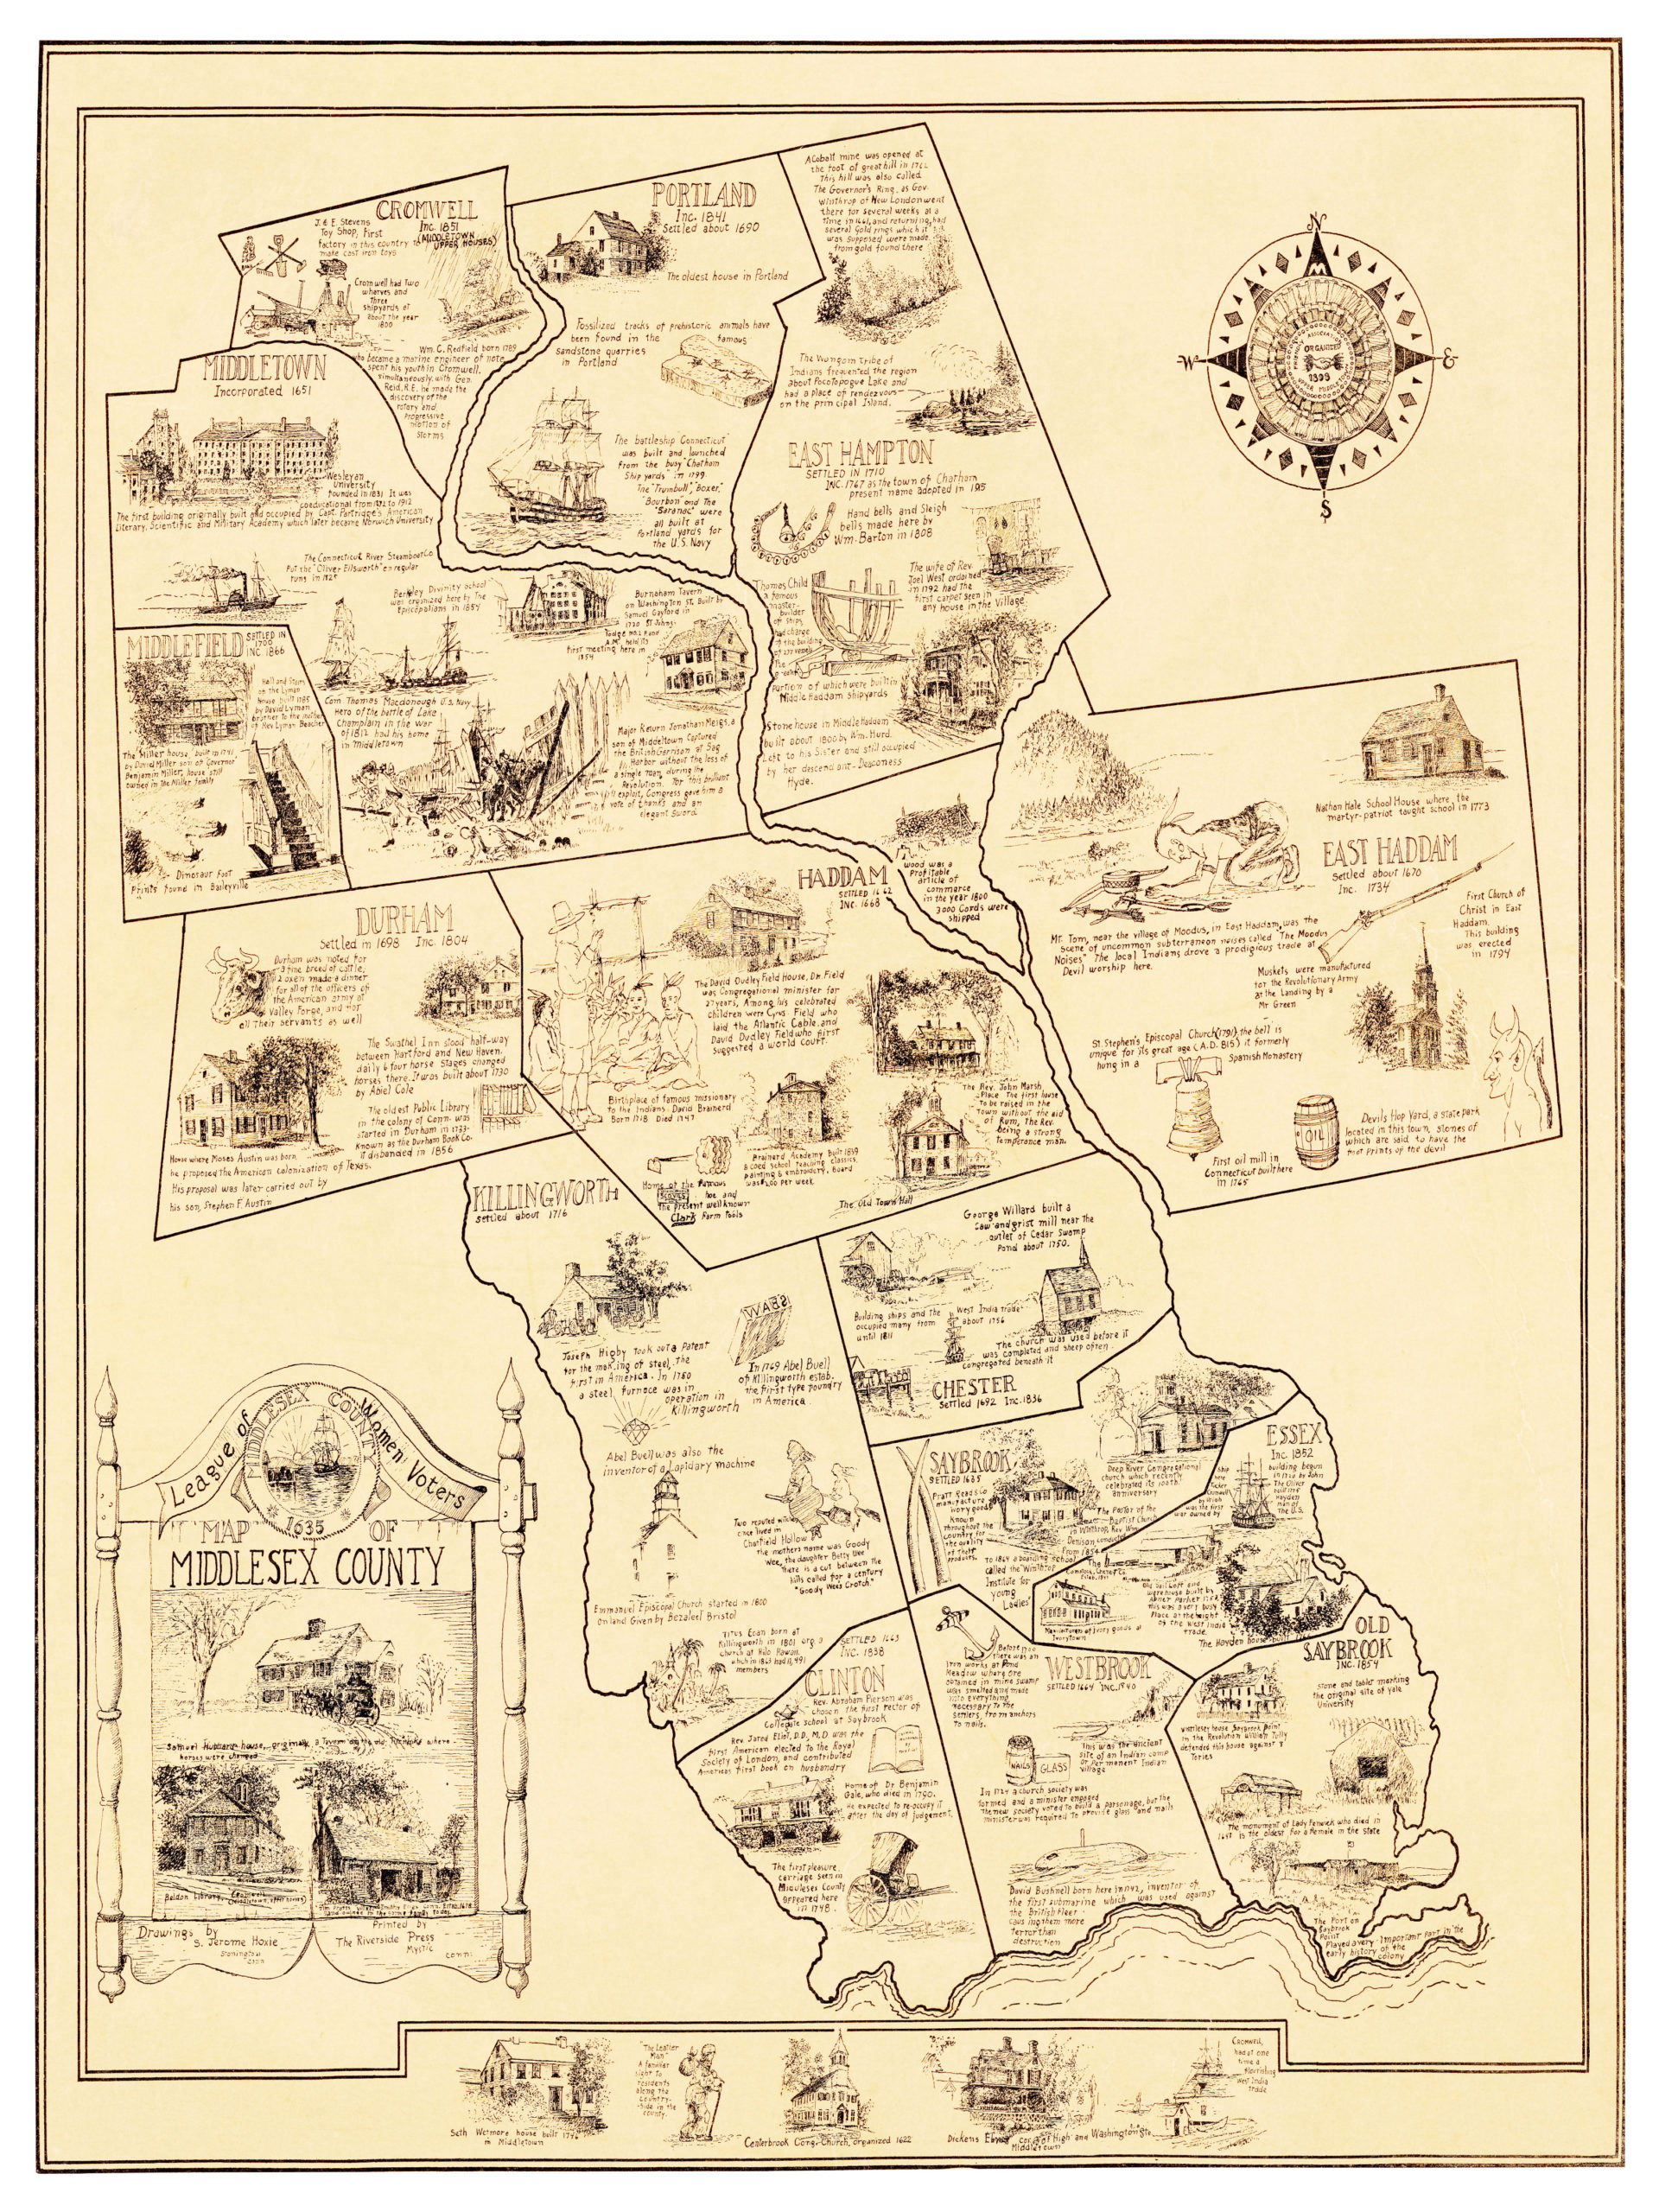 Historical Map Of Middlesex County Connecticut KNOWOL - Connecticut county map